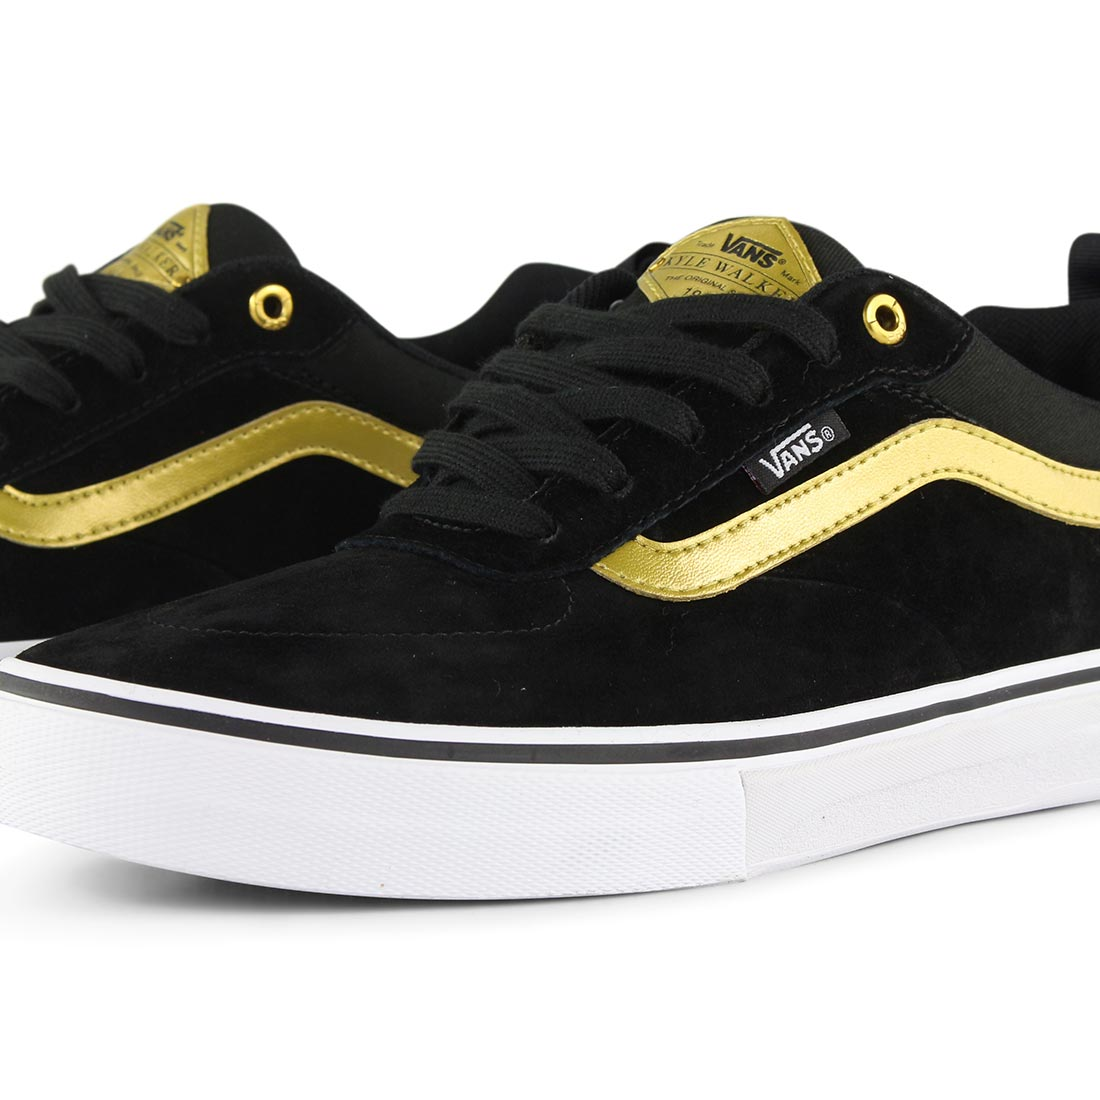 dfc114d3309873 Vans Kyle Walker Pro Skate Shoes - Black   Metallic Gold   White